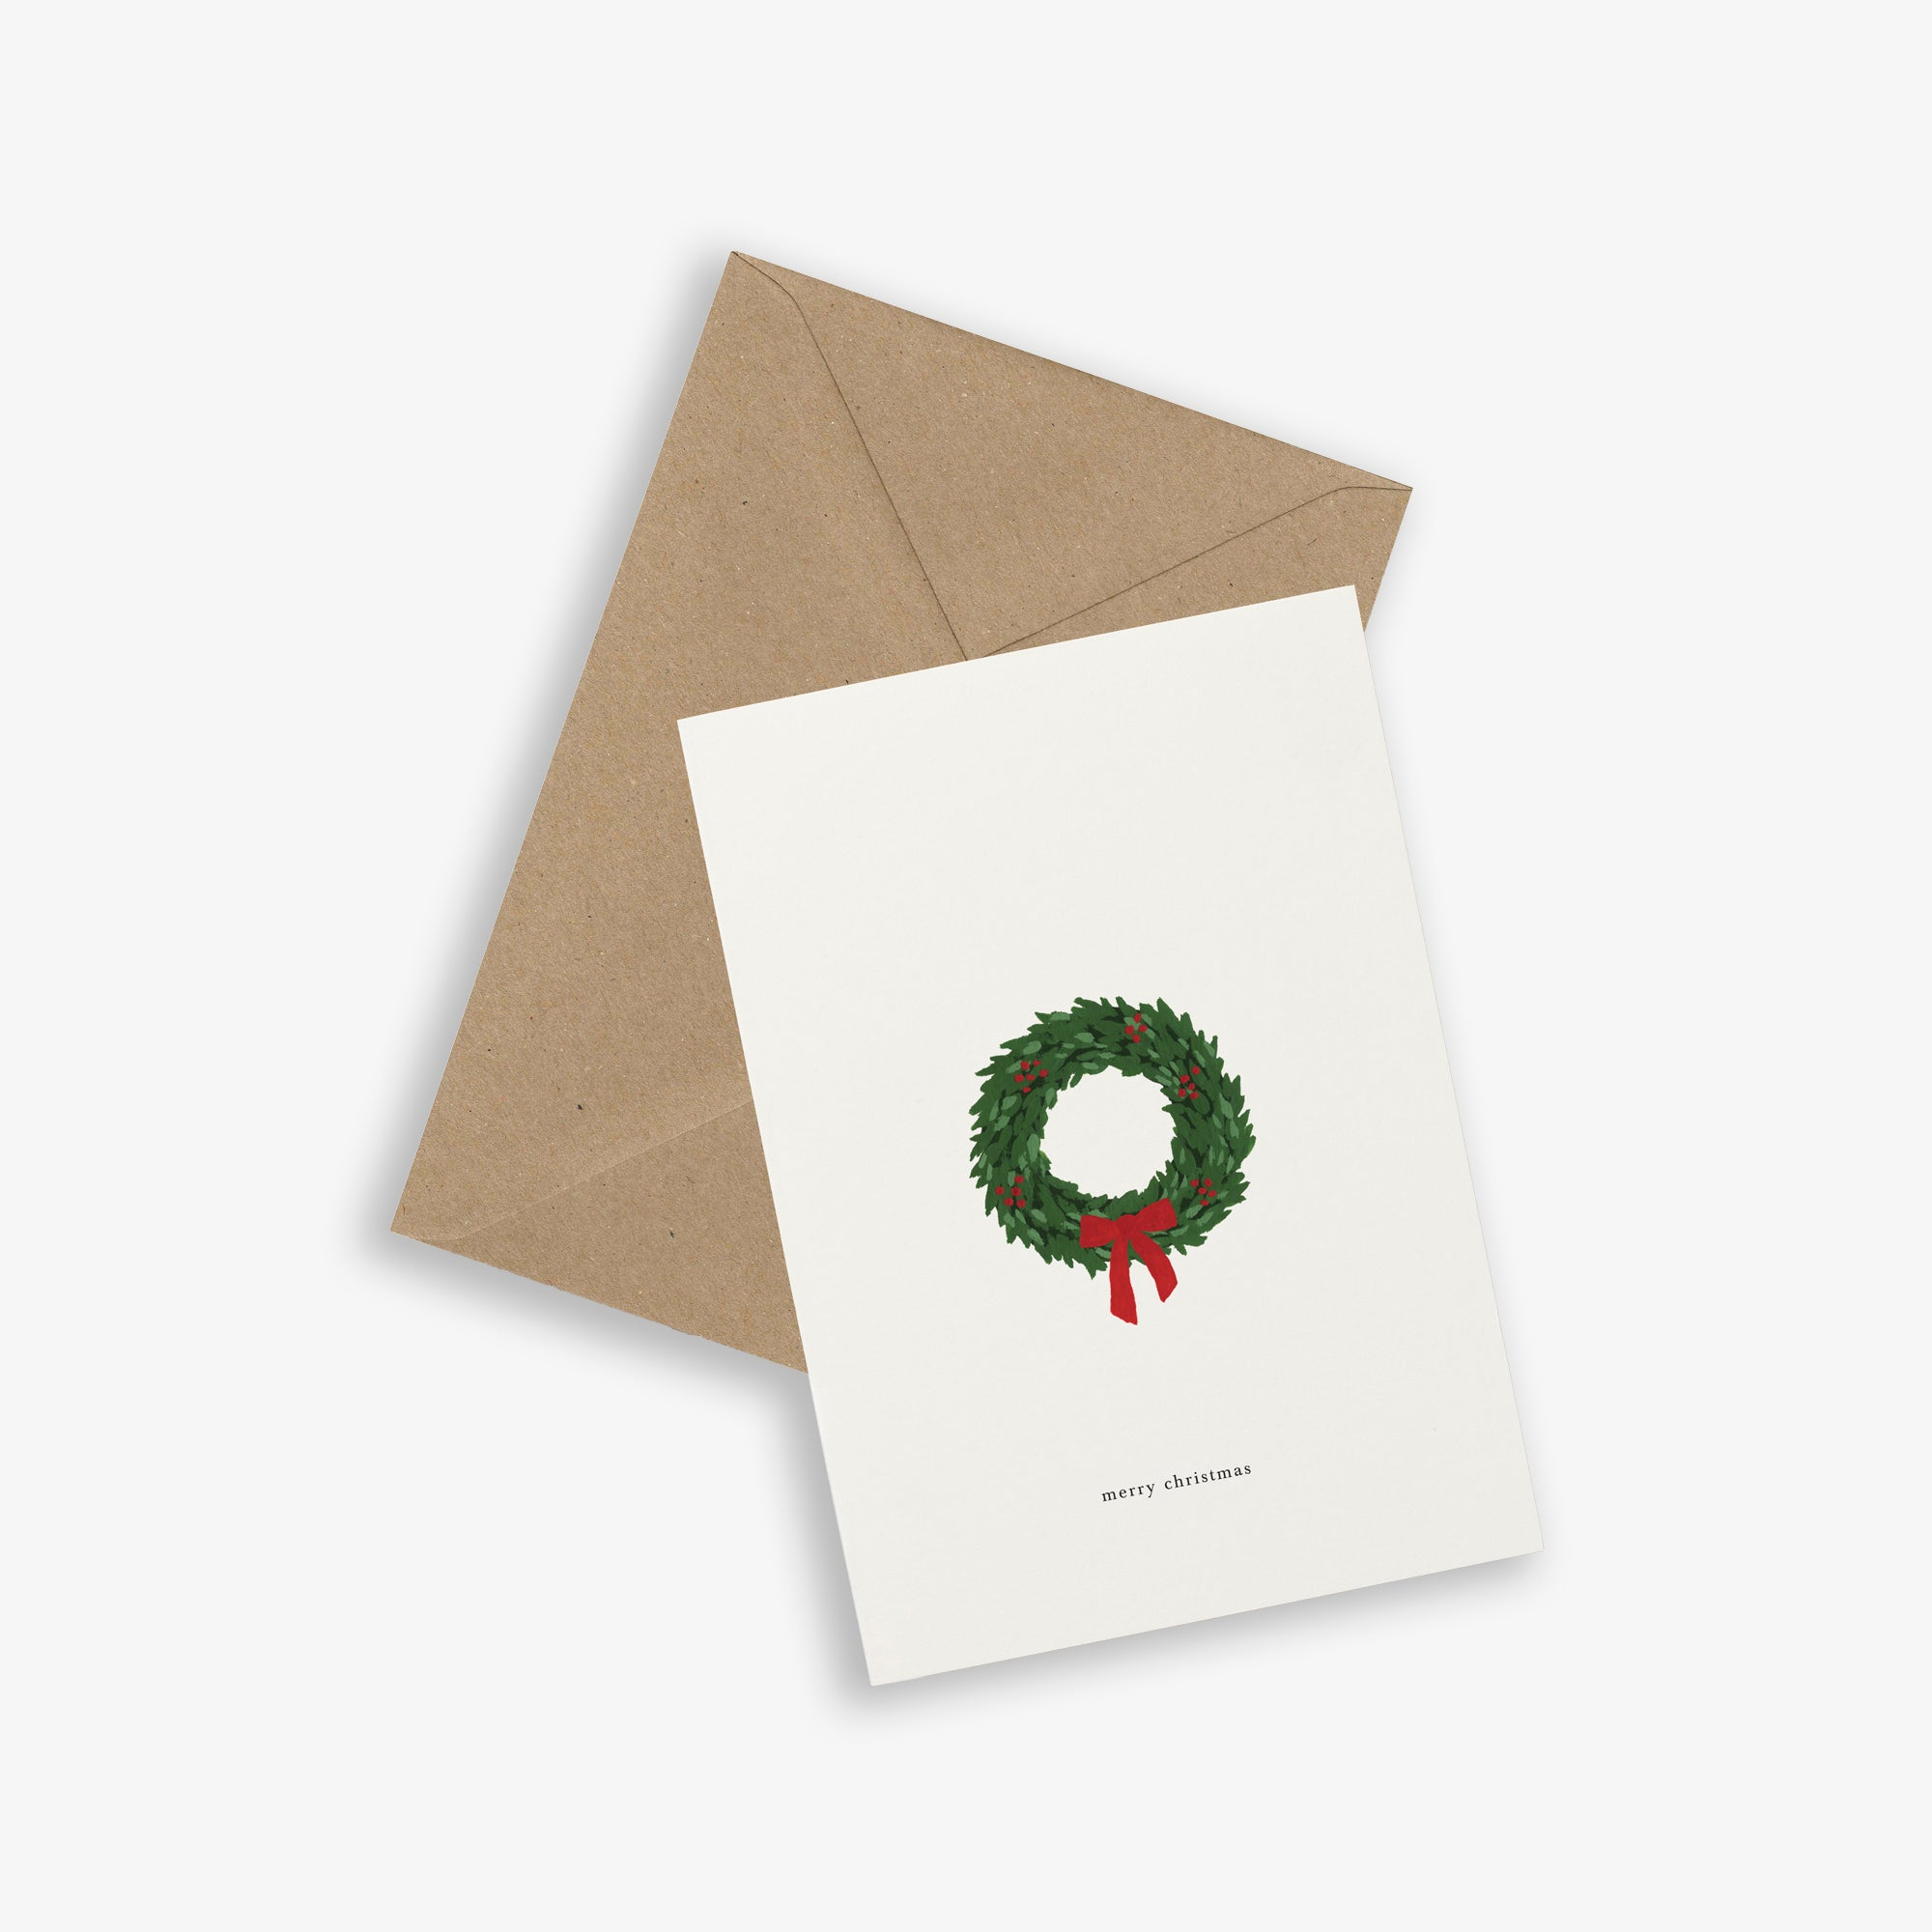 GREETING CARD / CHRISTMAS WREATH